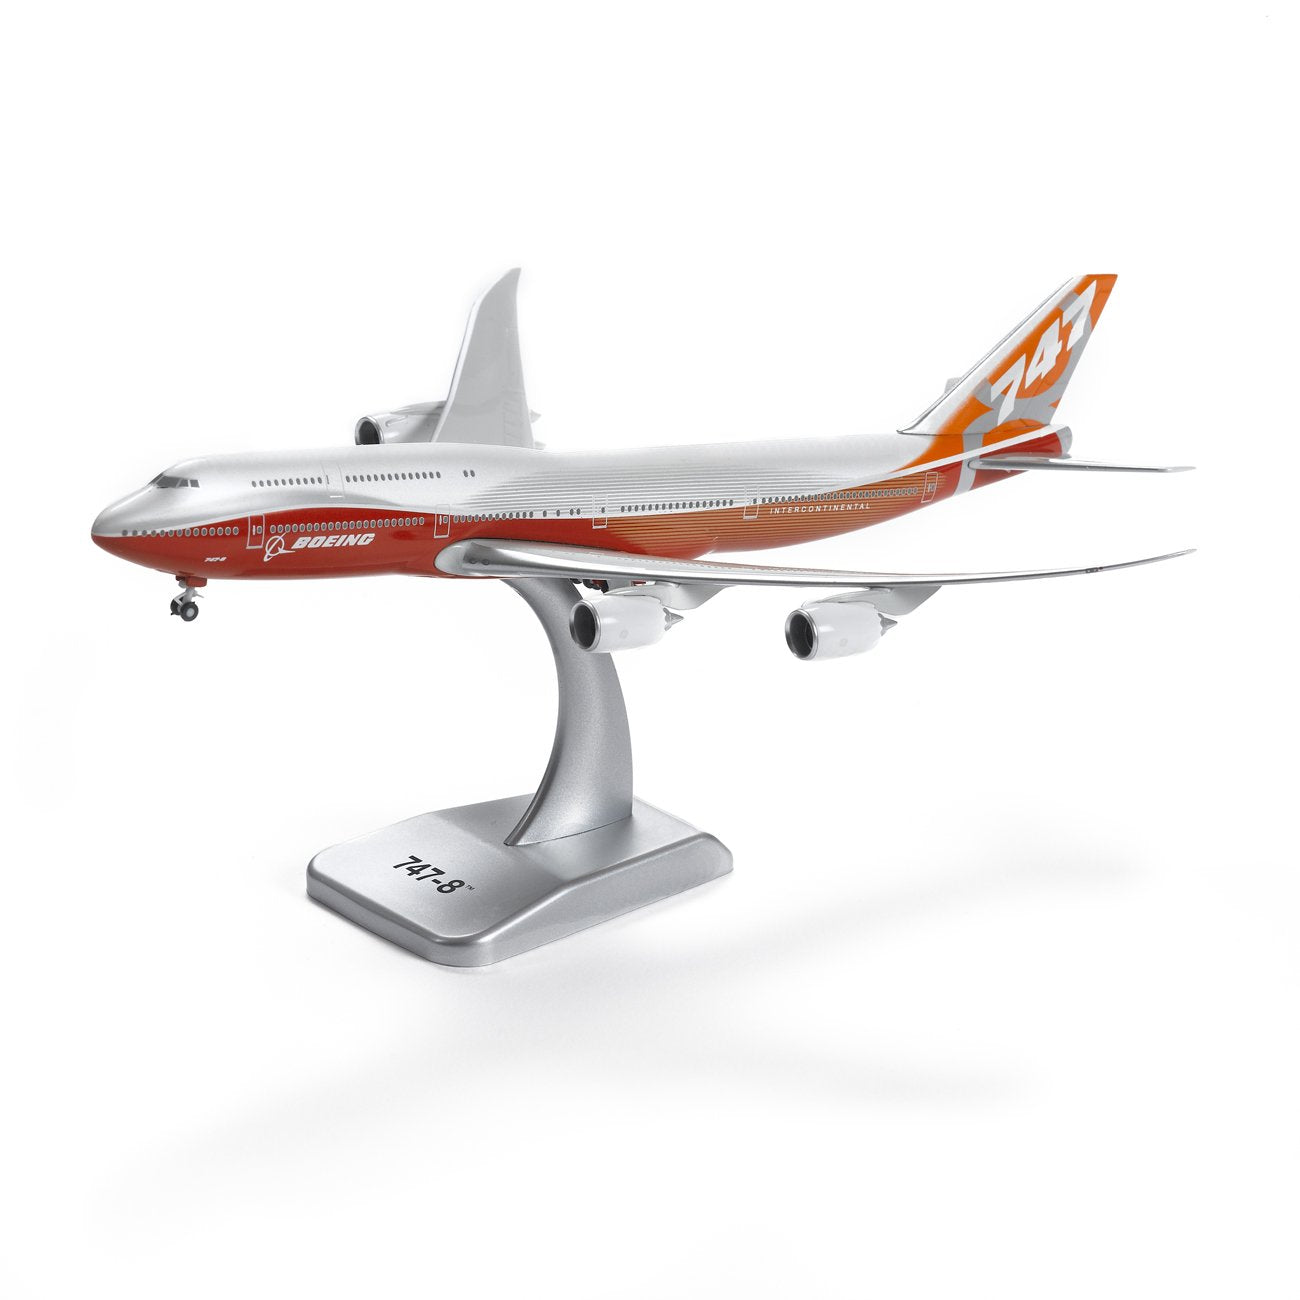 Boeing 747-8 1:400 Sunrise Livery Die-Cast Model